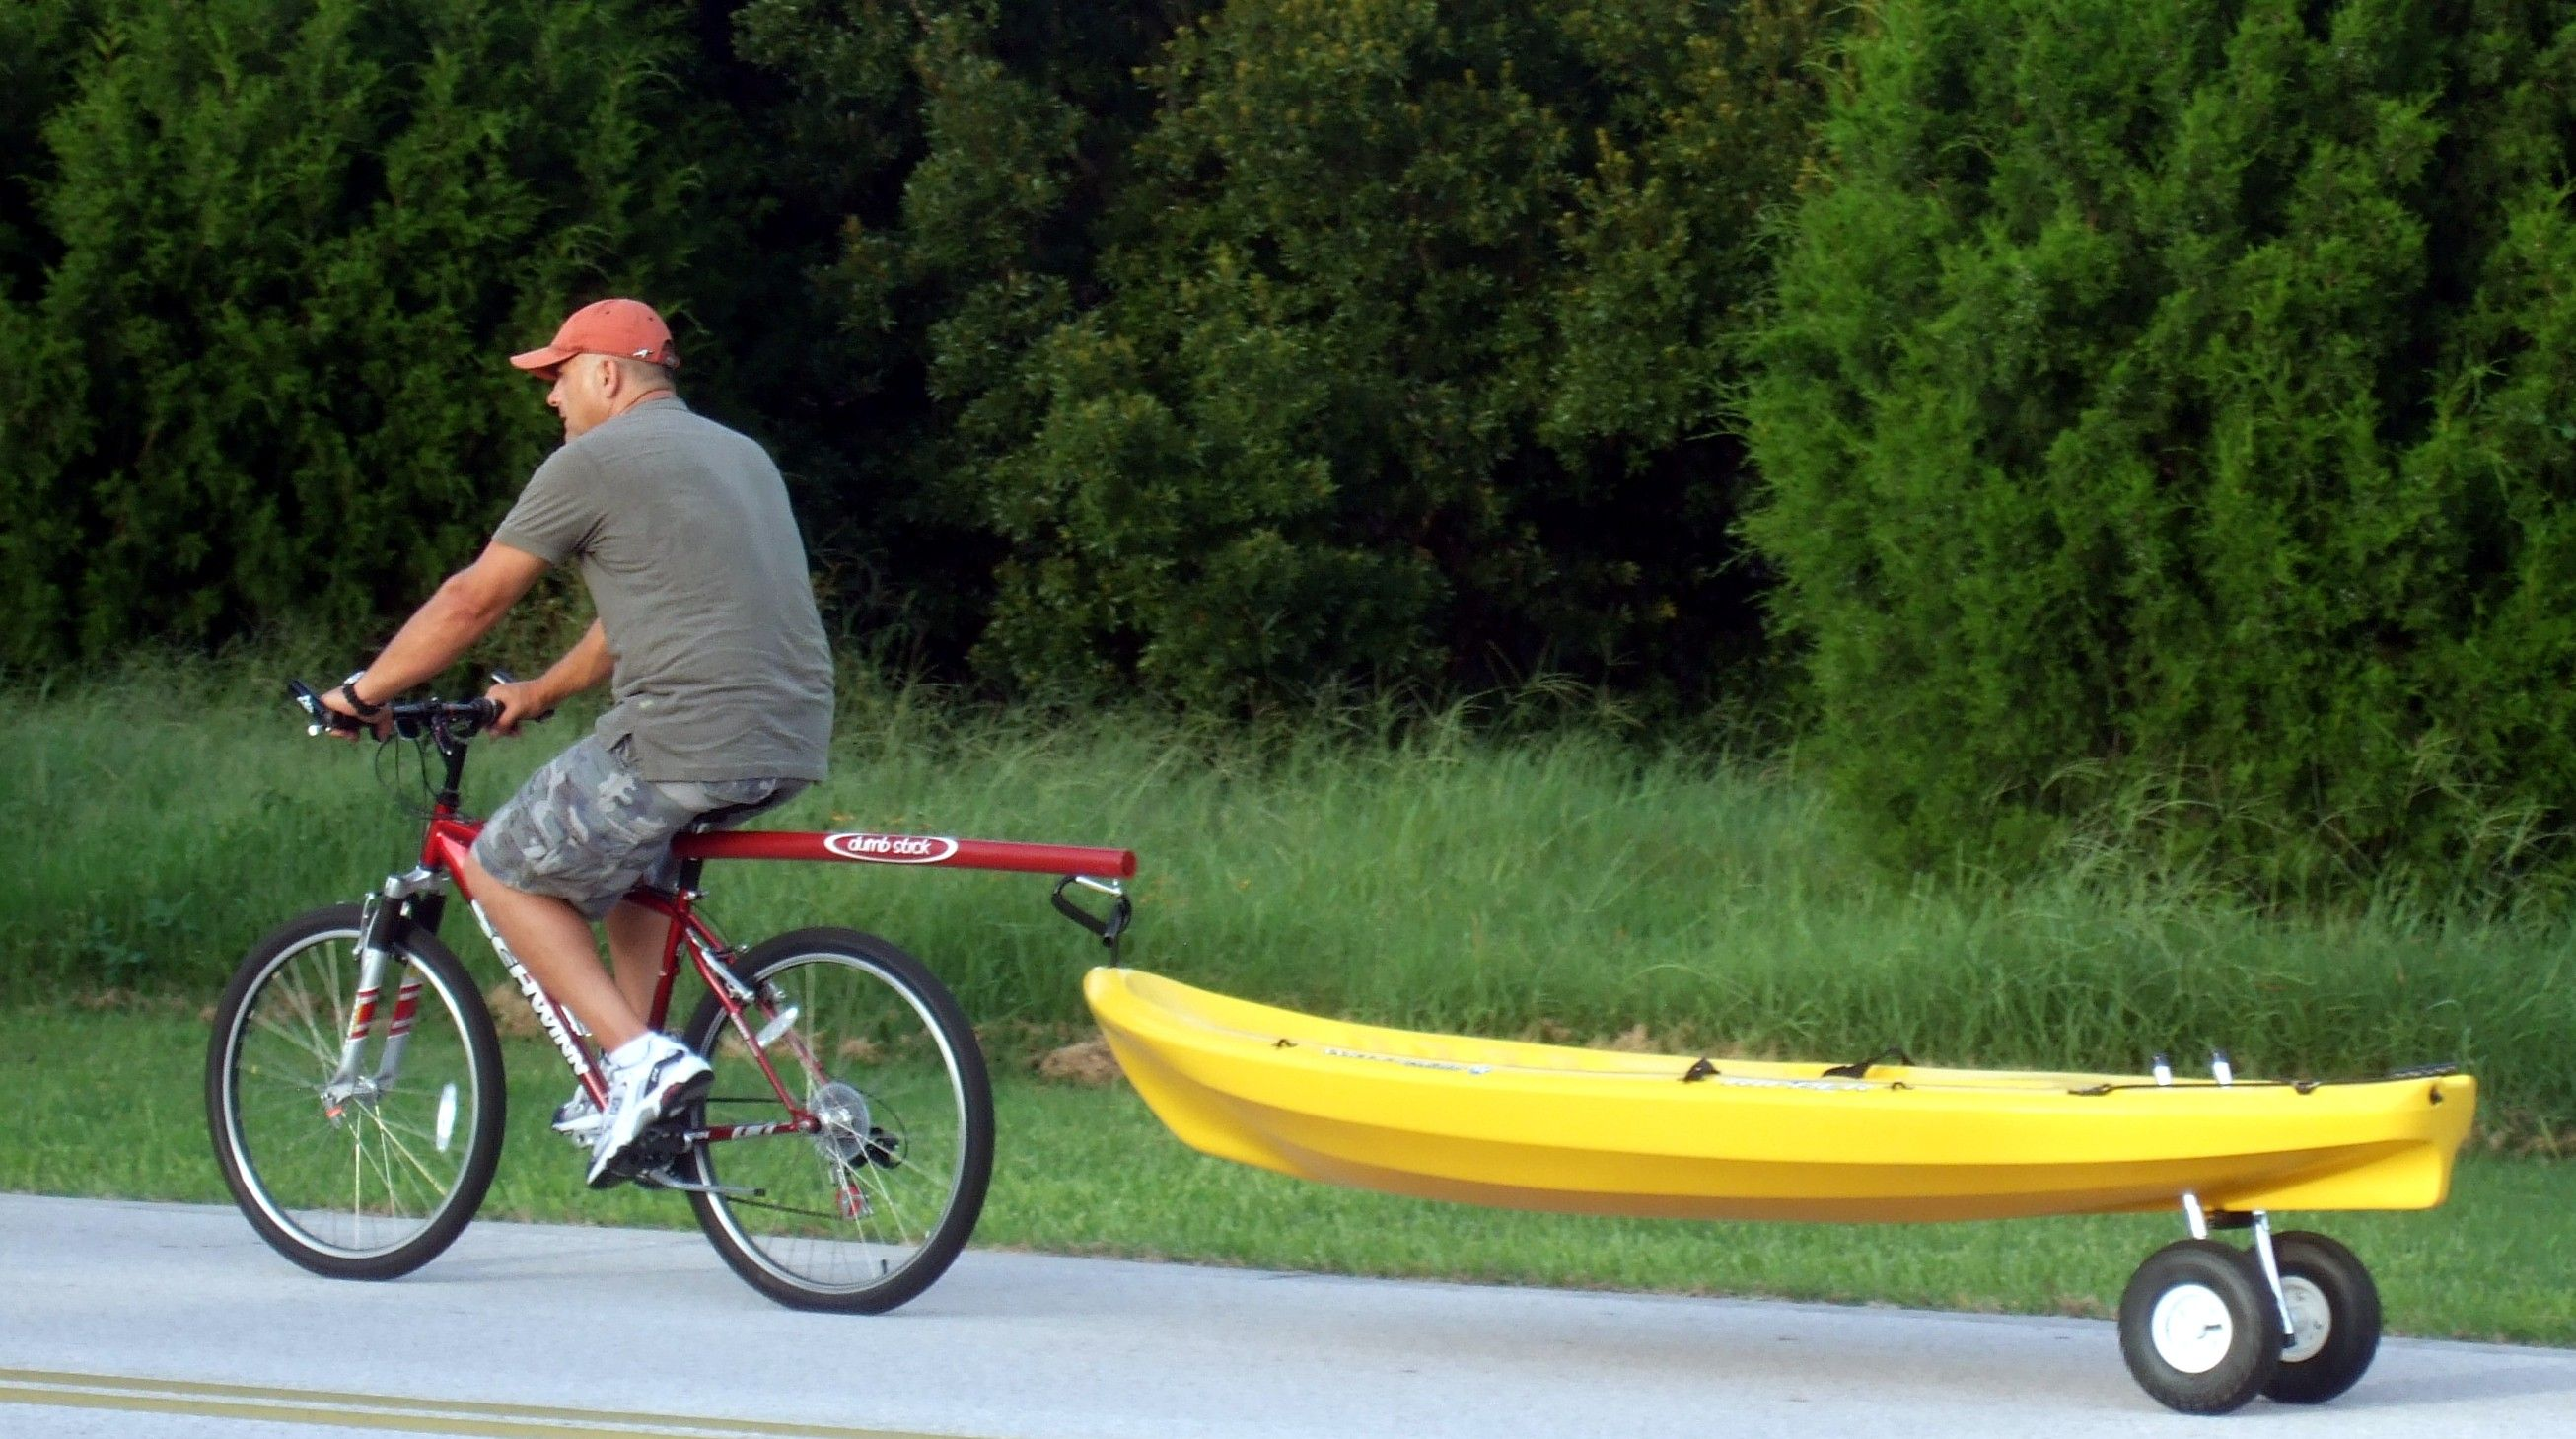 Www.dumb-stick.com Bicycle Tow Bar For Towing Your Kayak